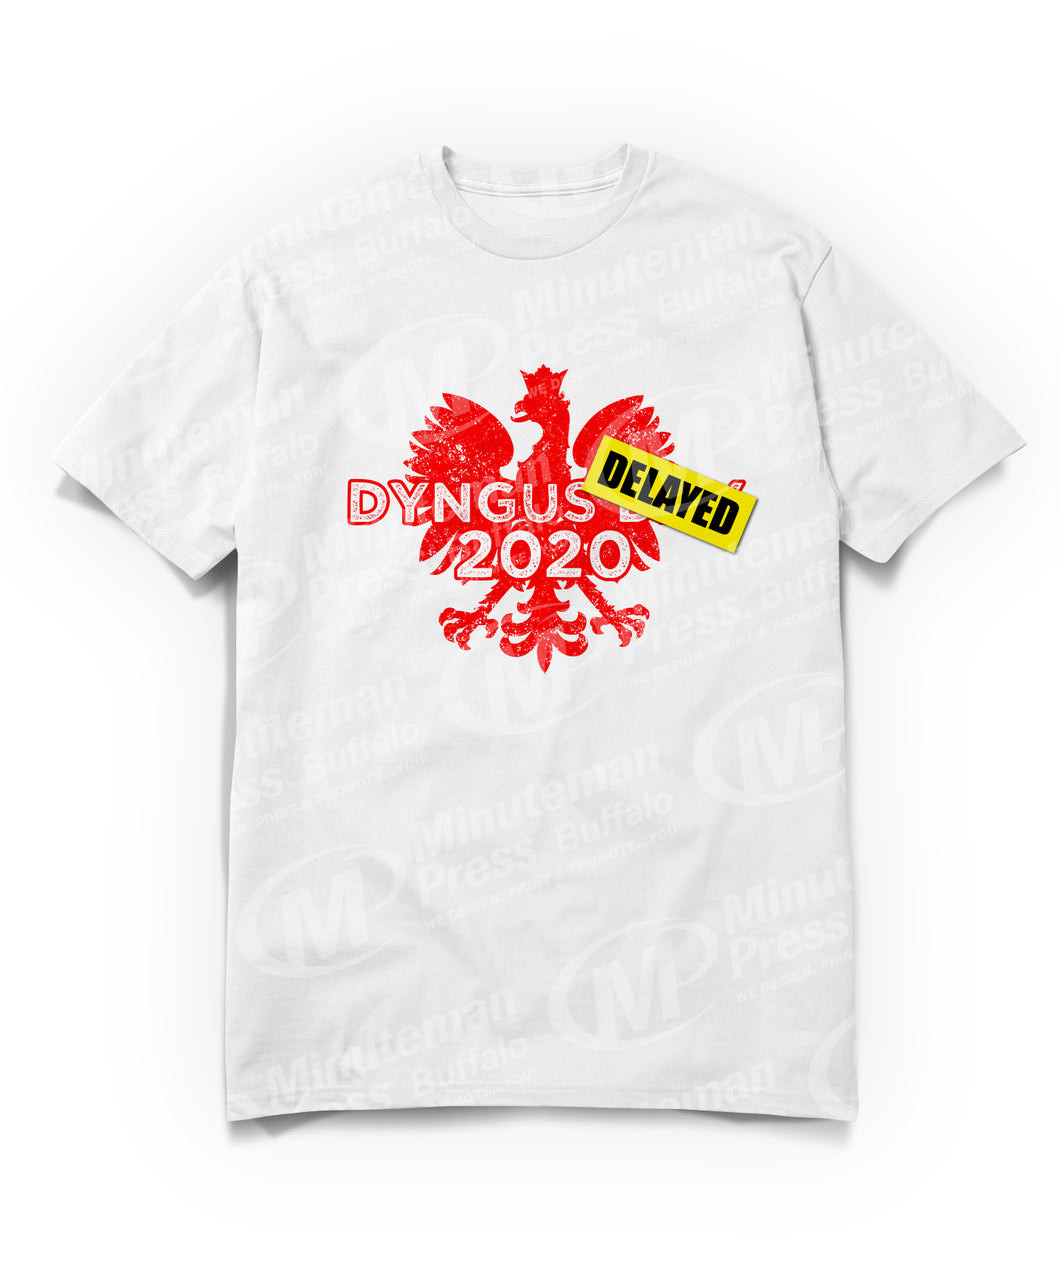 red dyngus delayed image on white t-shirt